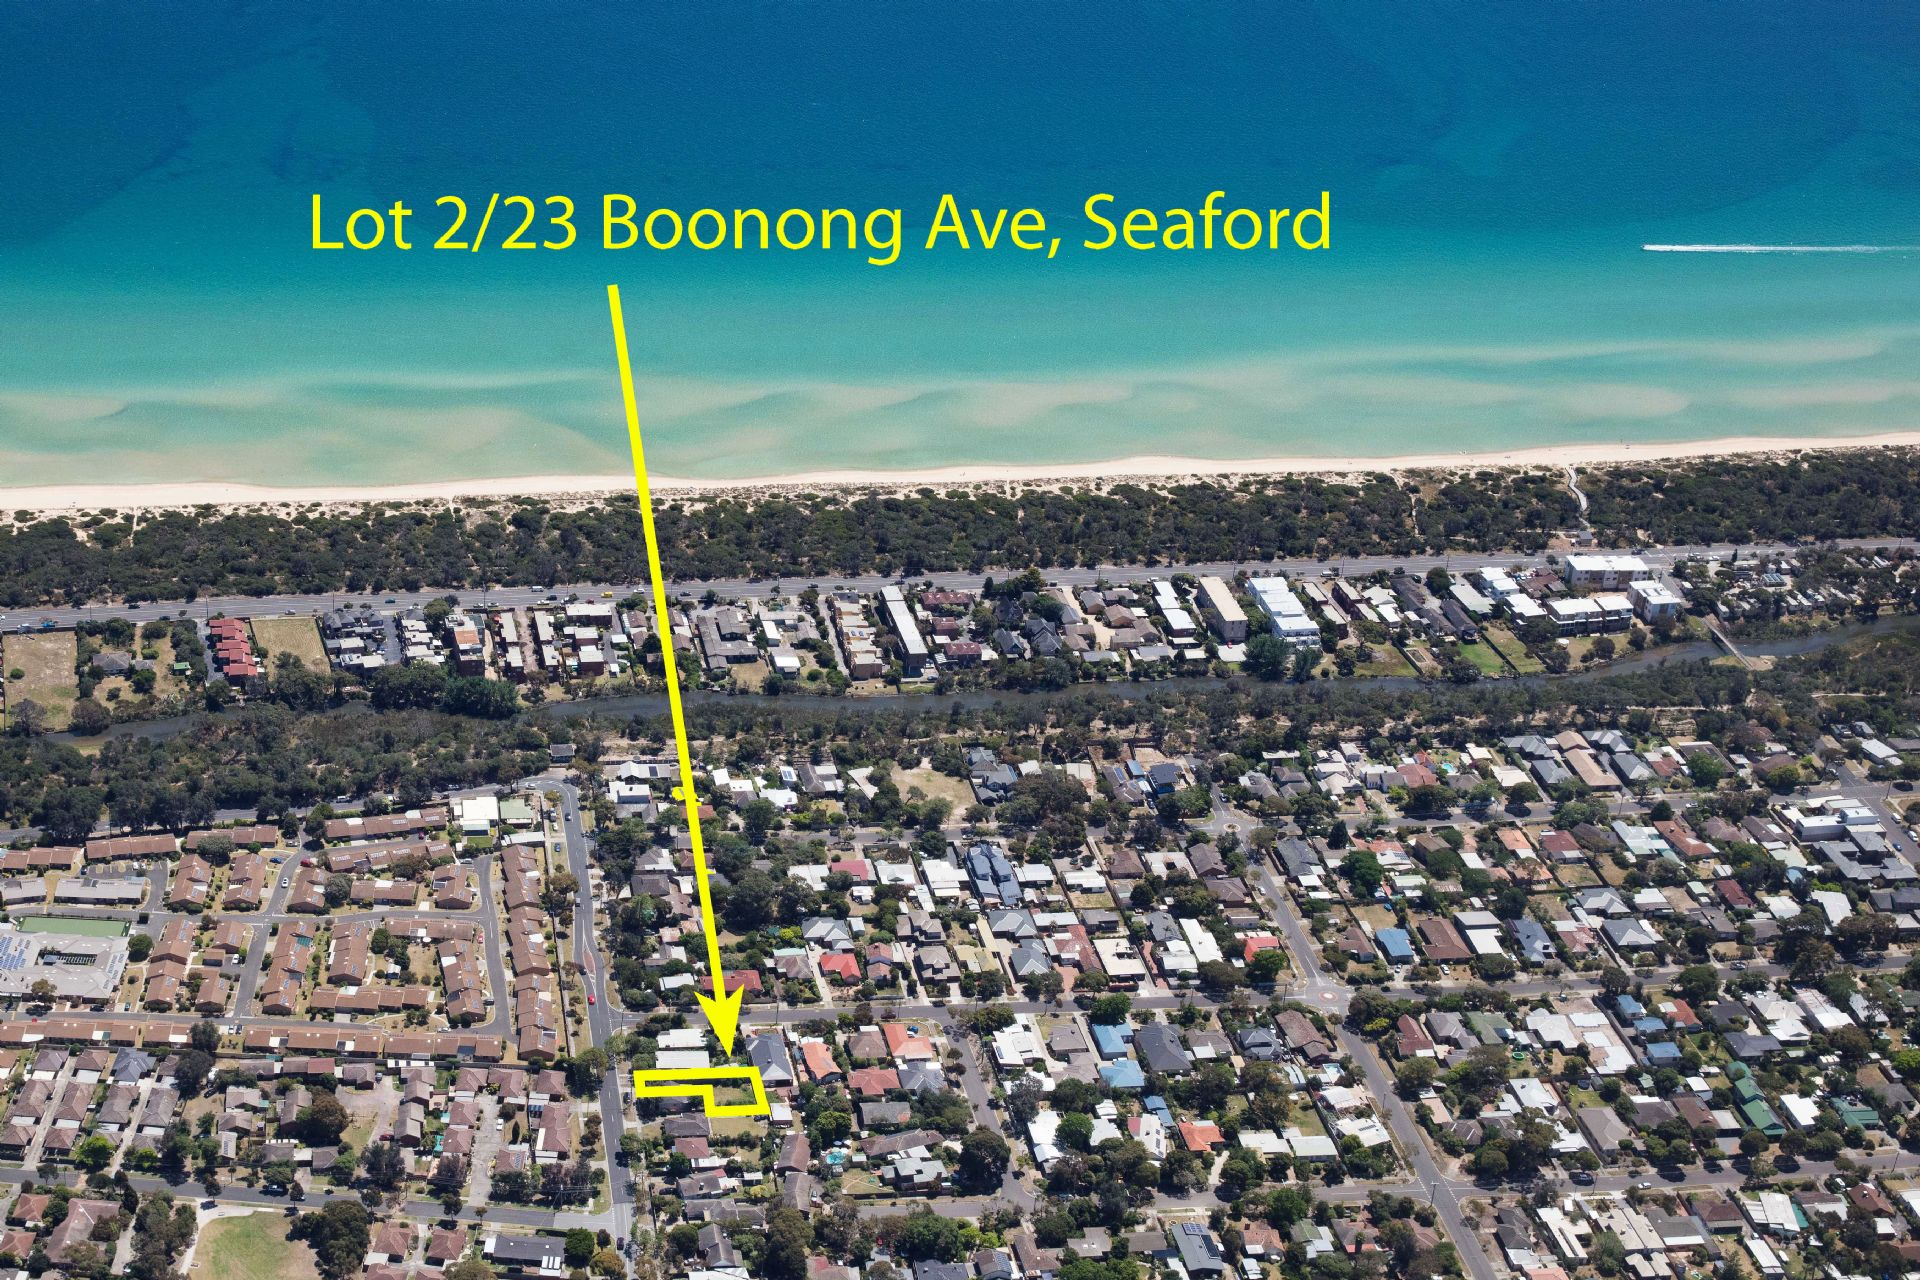 Lot 2/23 Boonong Avenue, SEAFORD, VIC, 3198 - Image